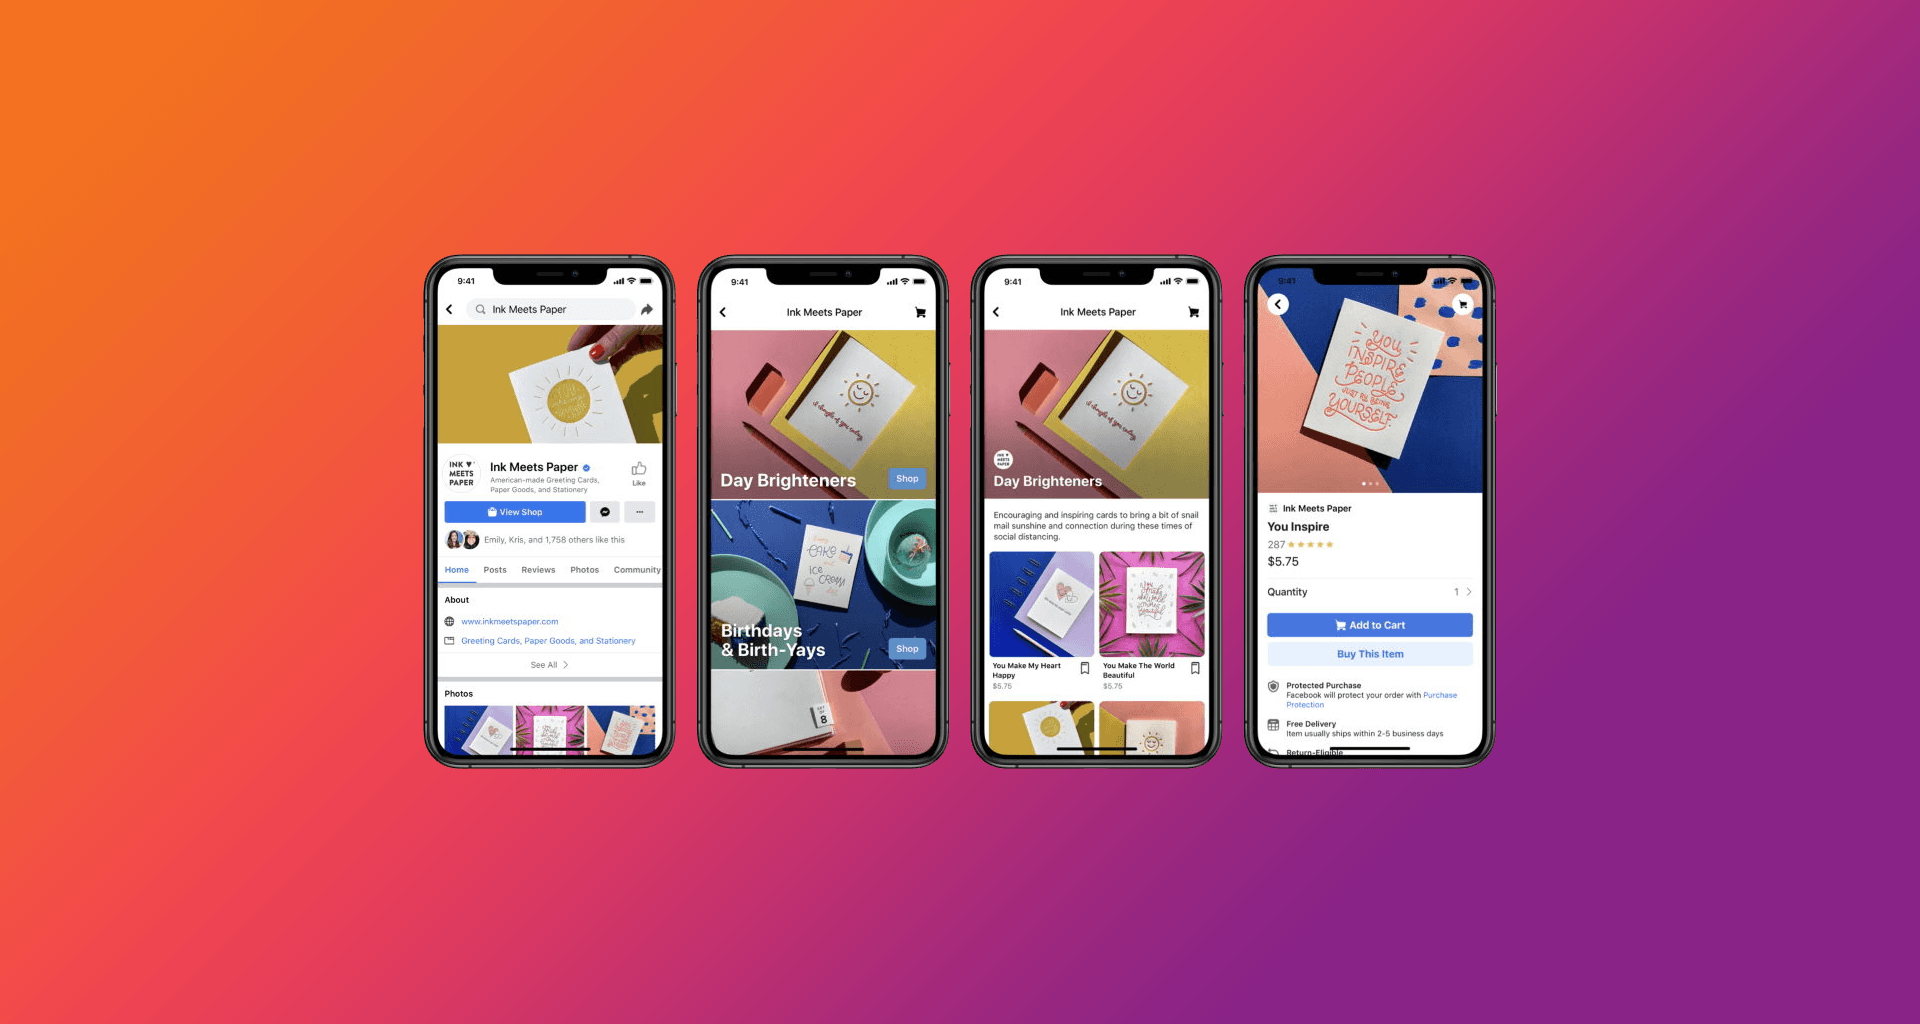 Facebook Shops is launching soon: Here's what you need to know